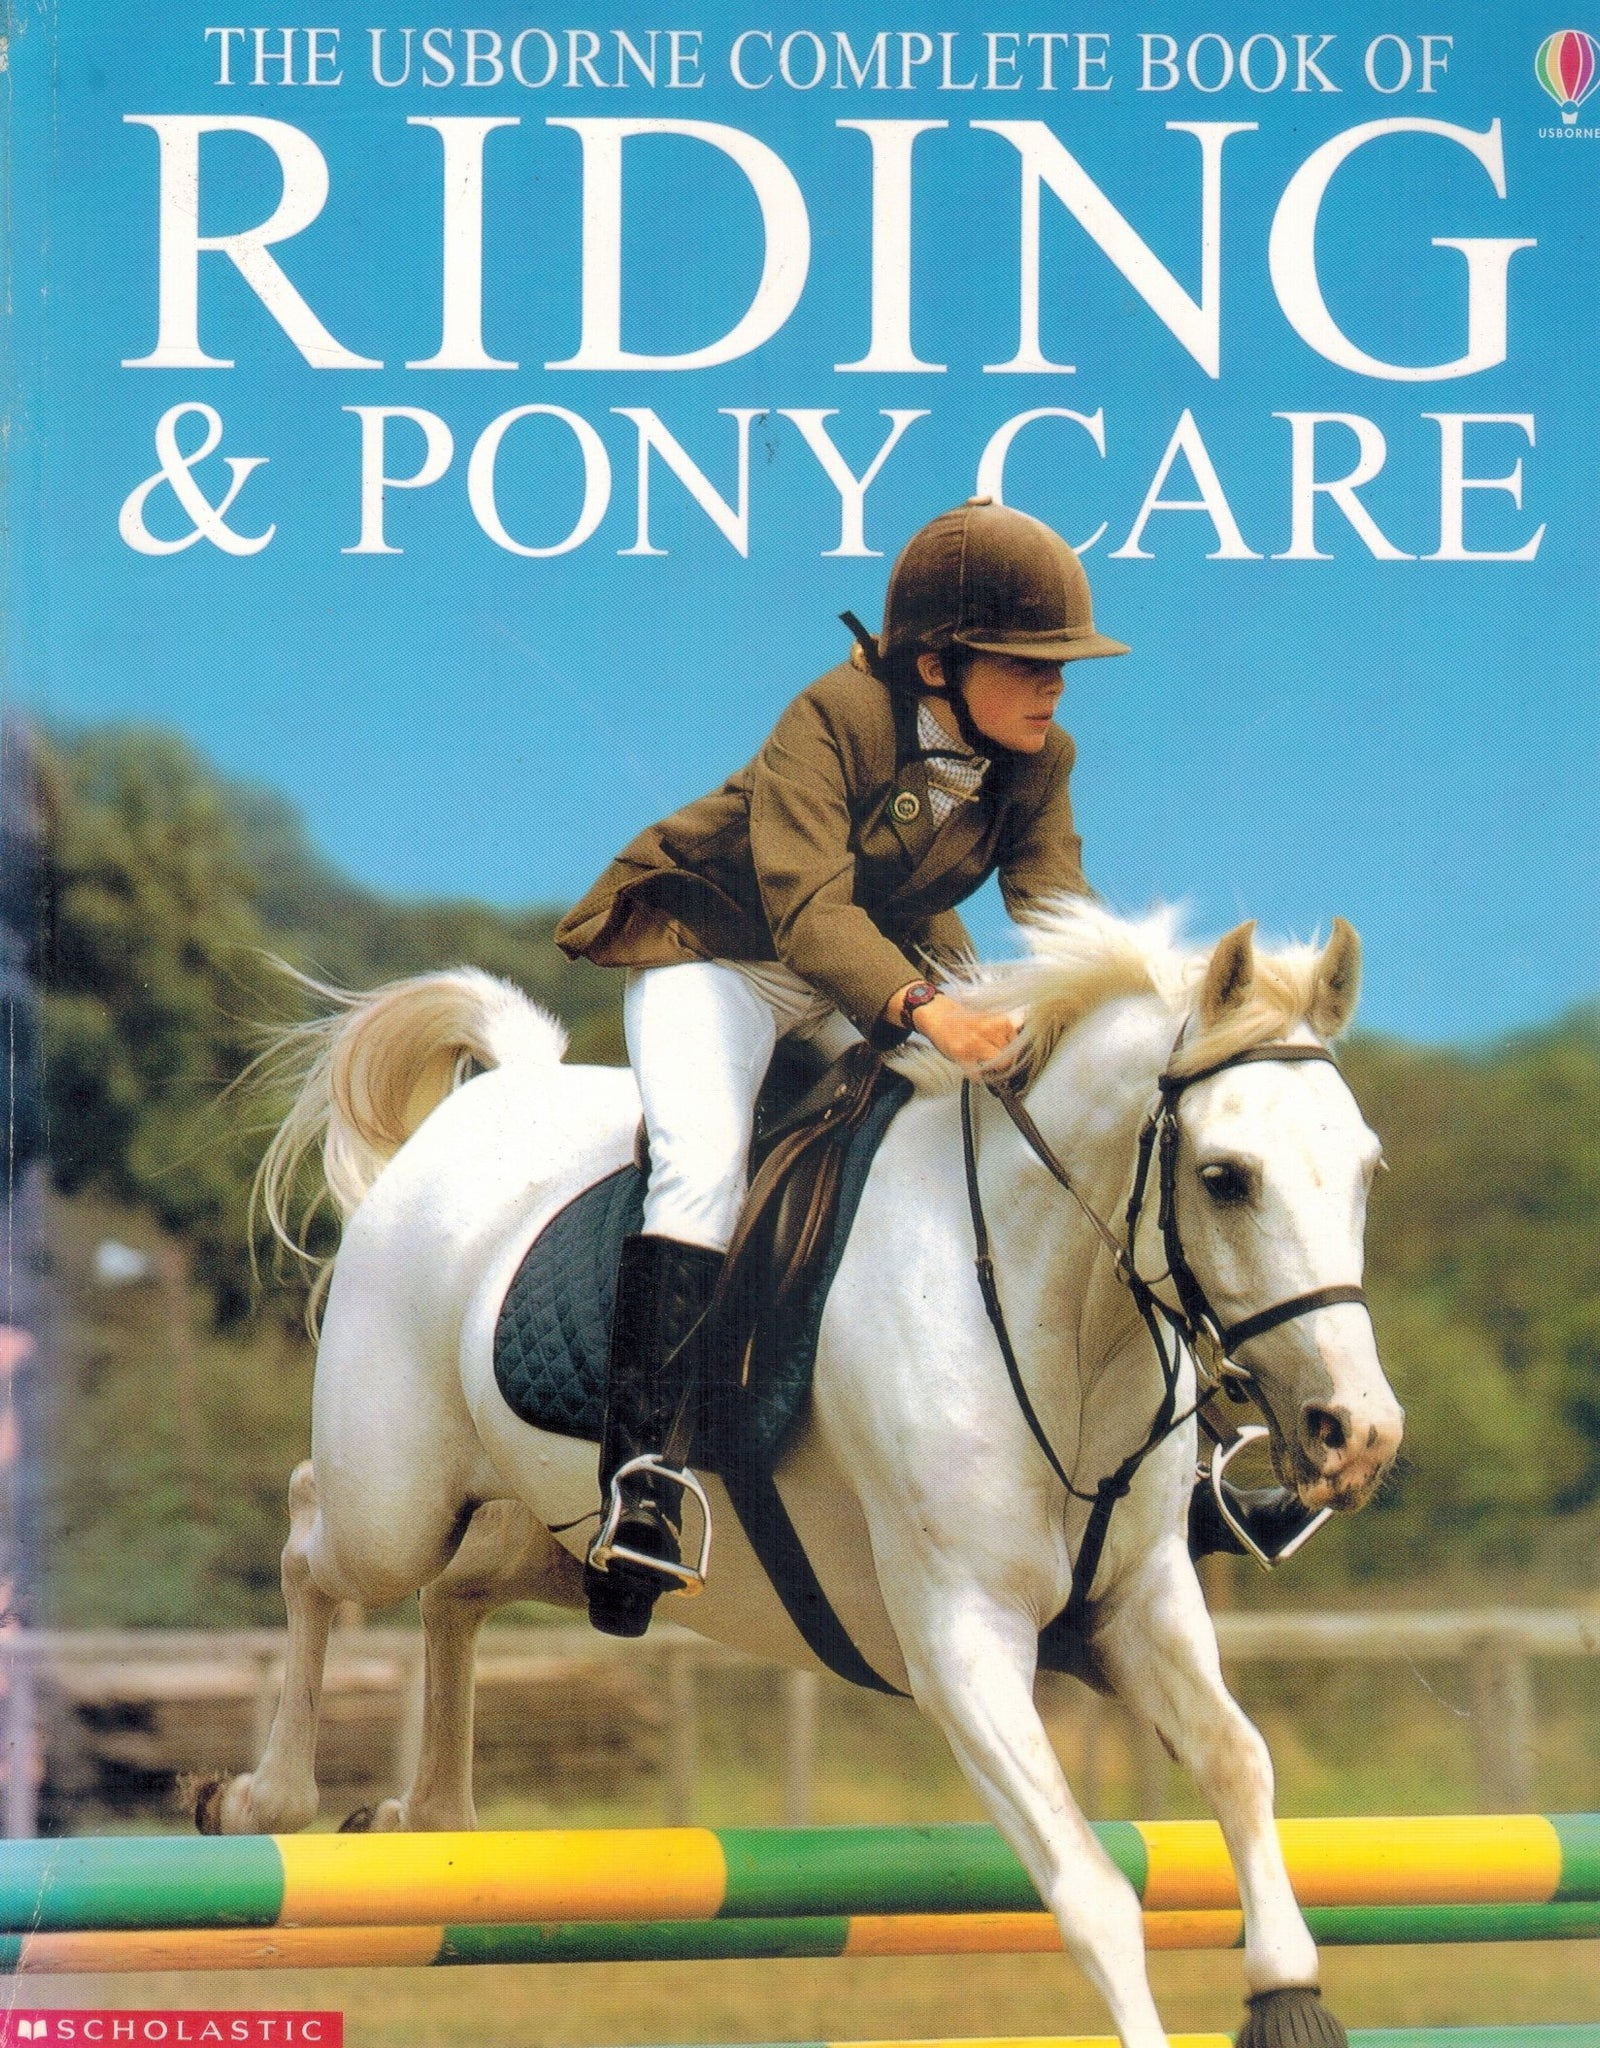 THE USBORNE COMPLETE BOOK OF RIDING & PONY CARE  by Dickins, Rosie & Gill Harvey & Vicki Groombridge & Ian McNee